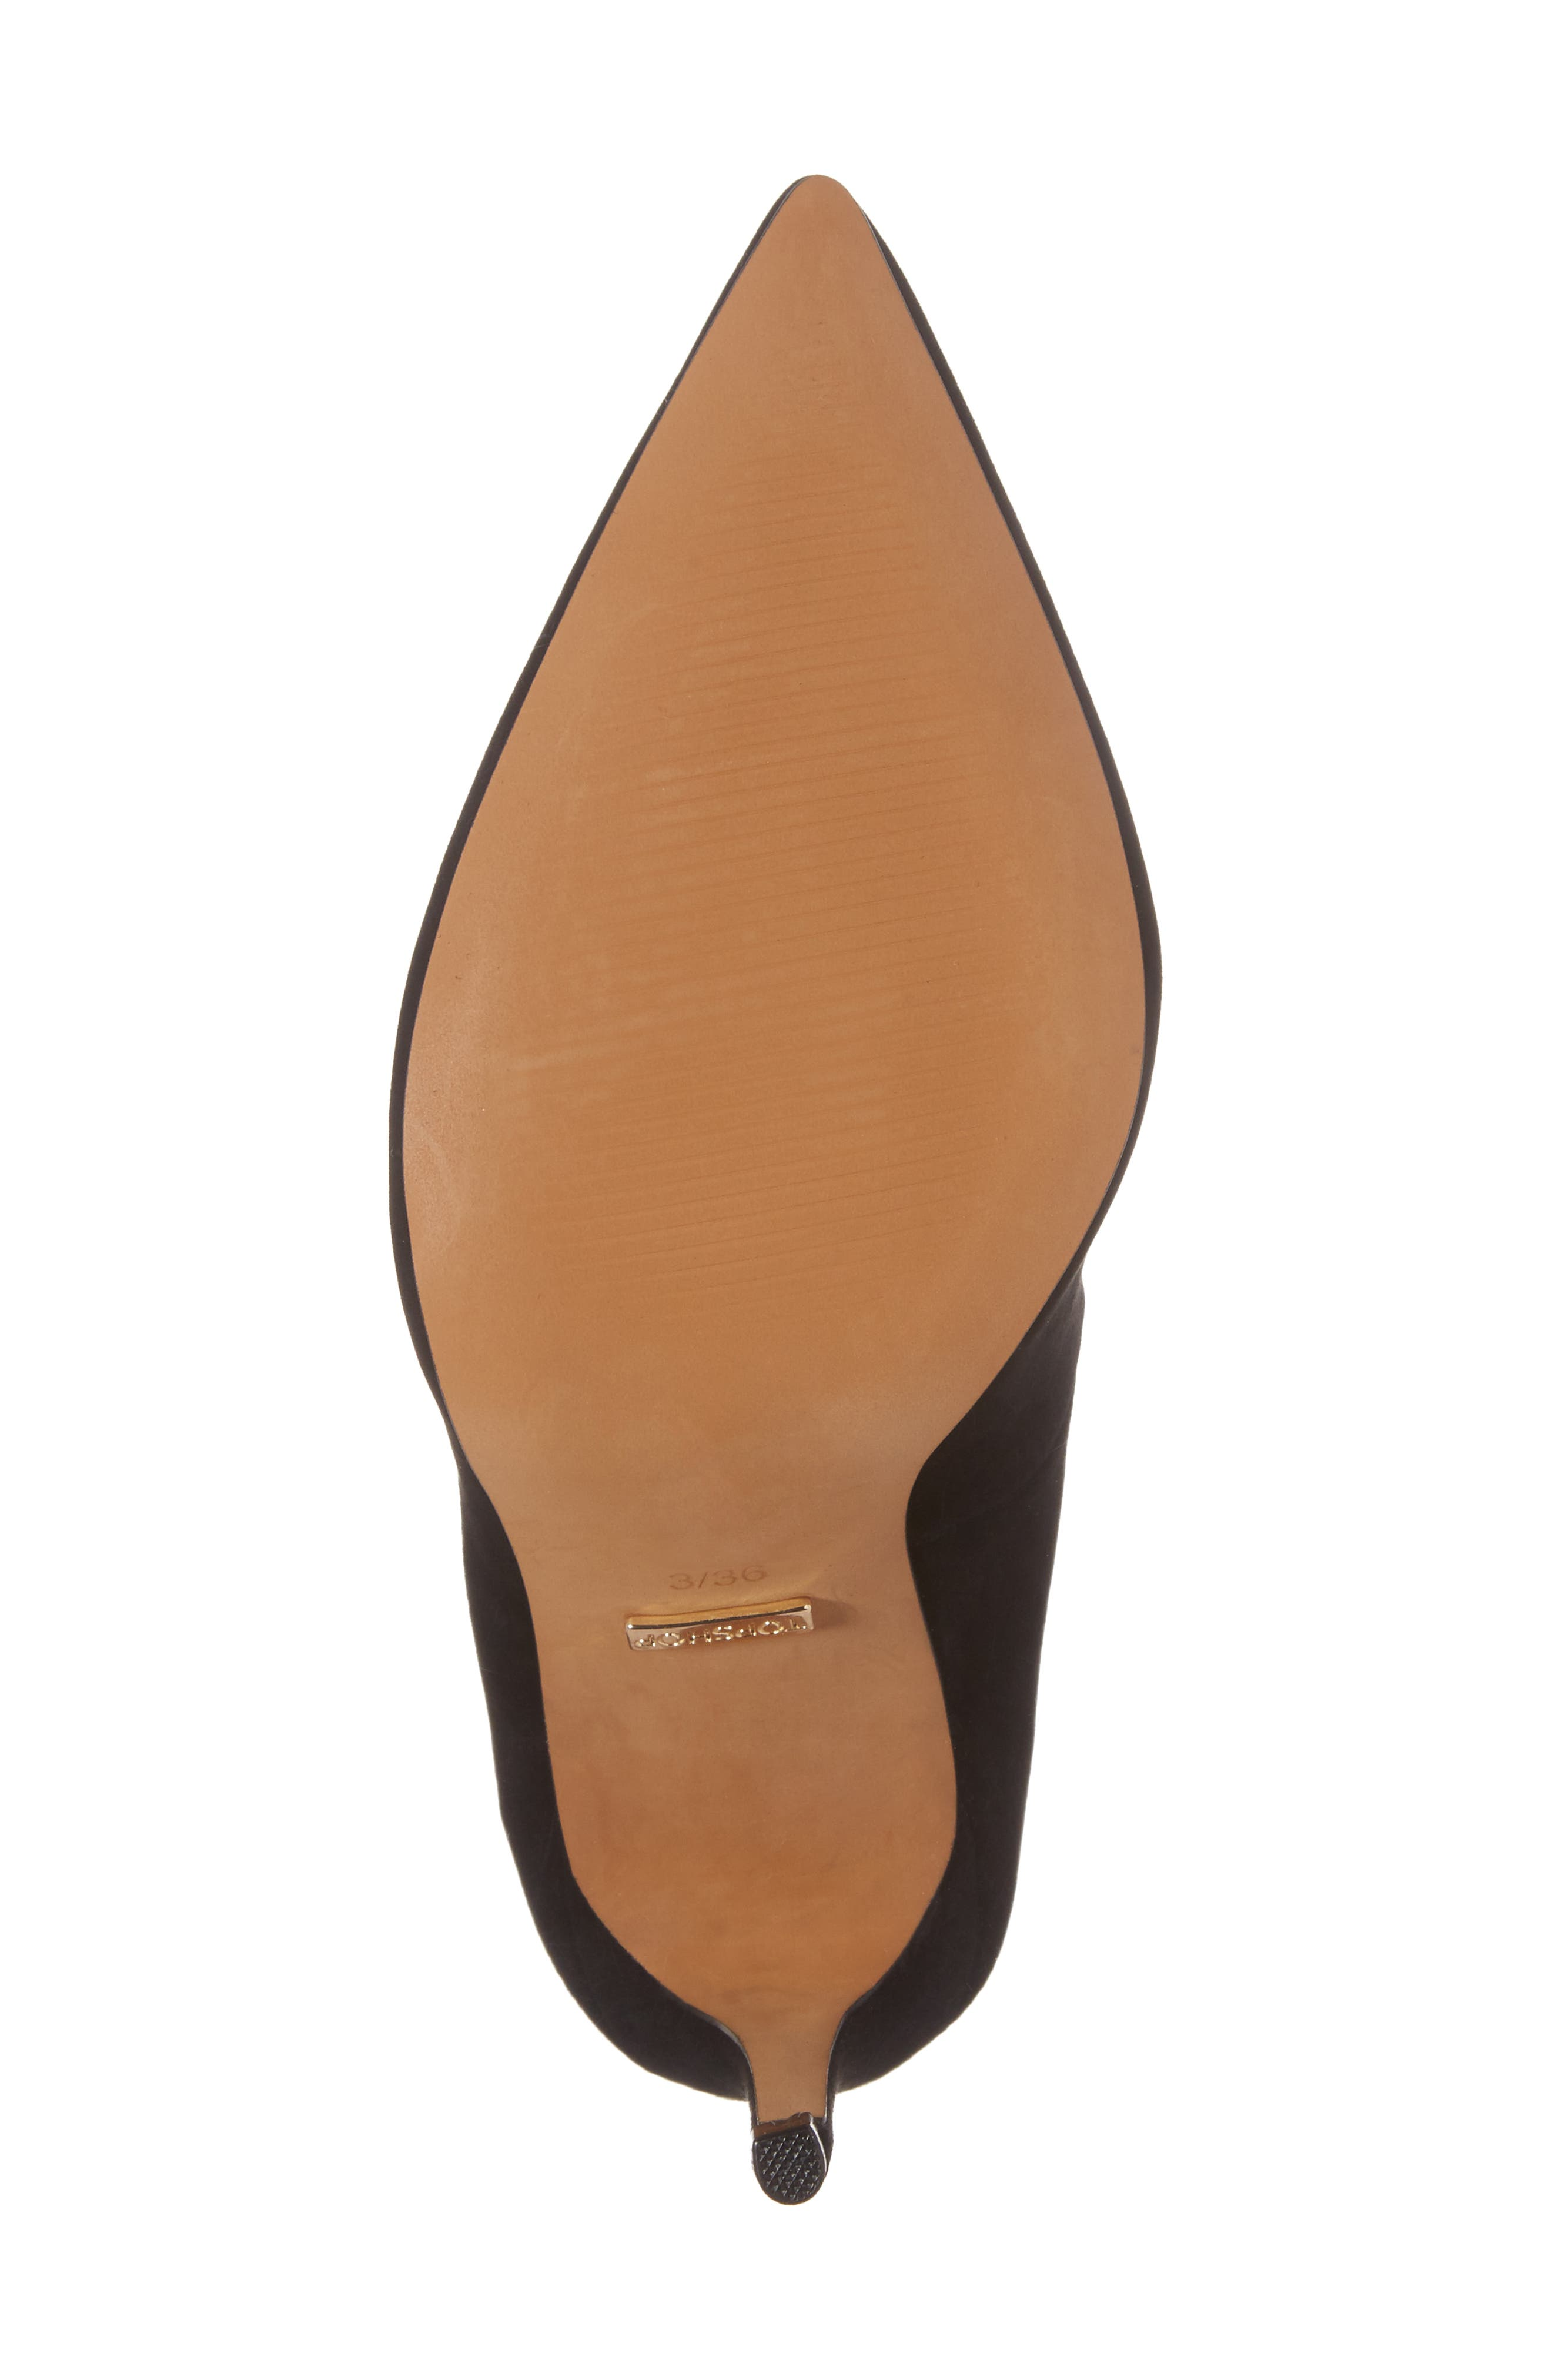 Grammer Pointy Toe Pump,                             Alternate thumbnail 6, color,                             BLACK LEATHER